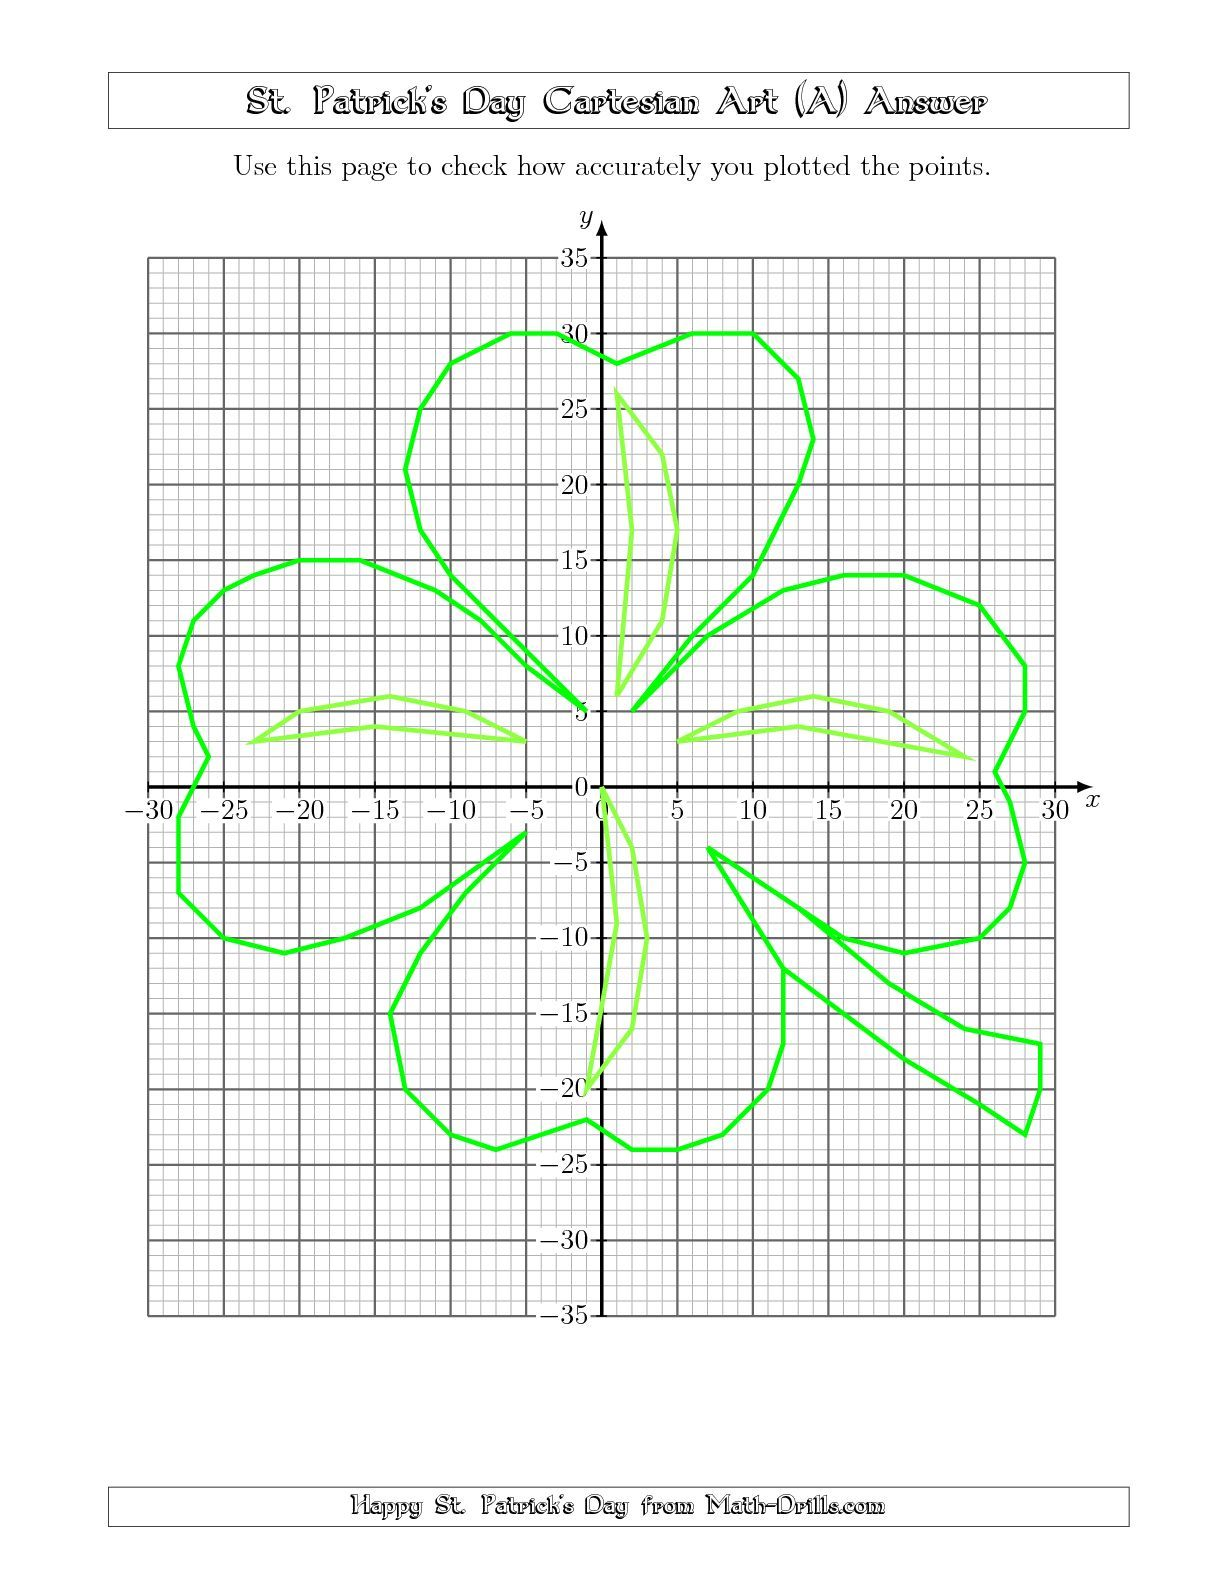 worksheet Christmas Coordinate Graphing Worksheets new st patricks day cartesian art shamrock math worksheet freemath